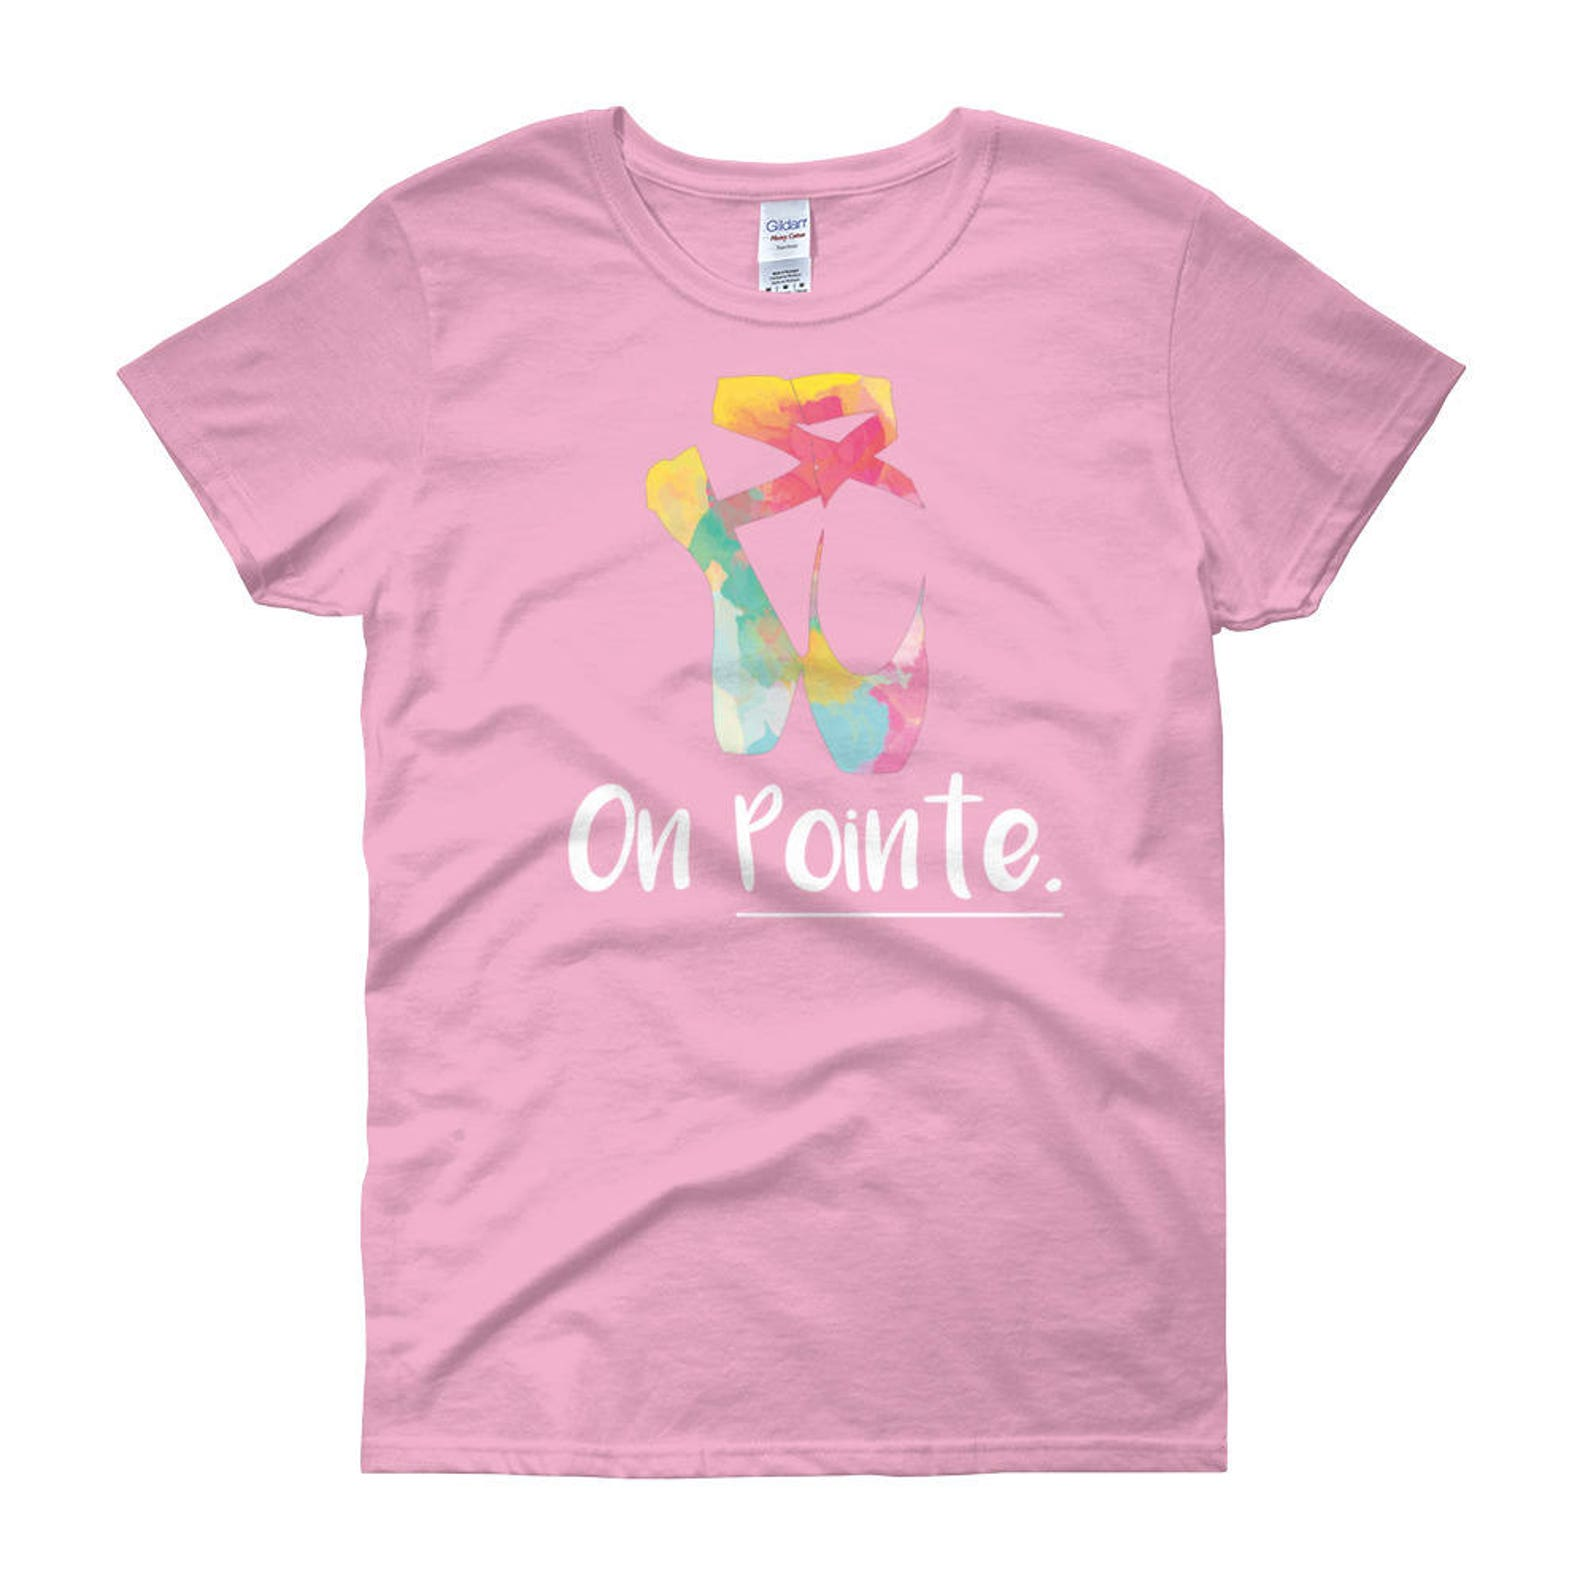 ballet pointe shoe womans t-shirt, cute ballet shirt, ballet shoe shirt, on pointe shirt, dancer shirt, classical dancer shirts,